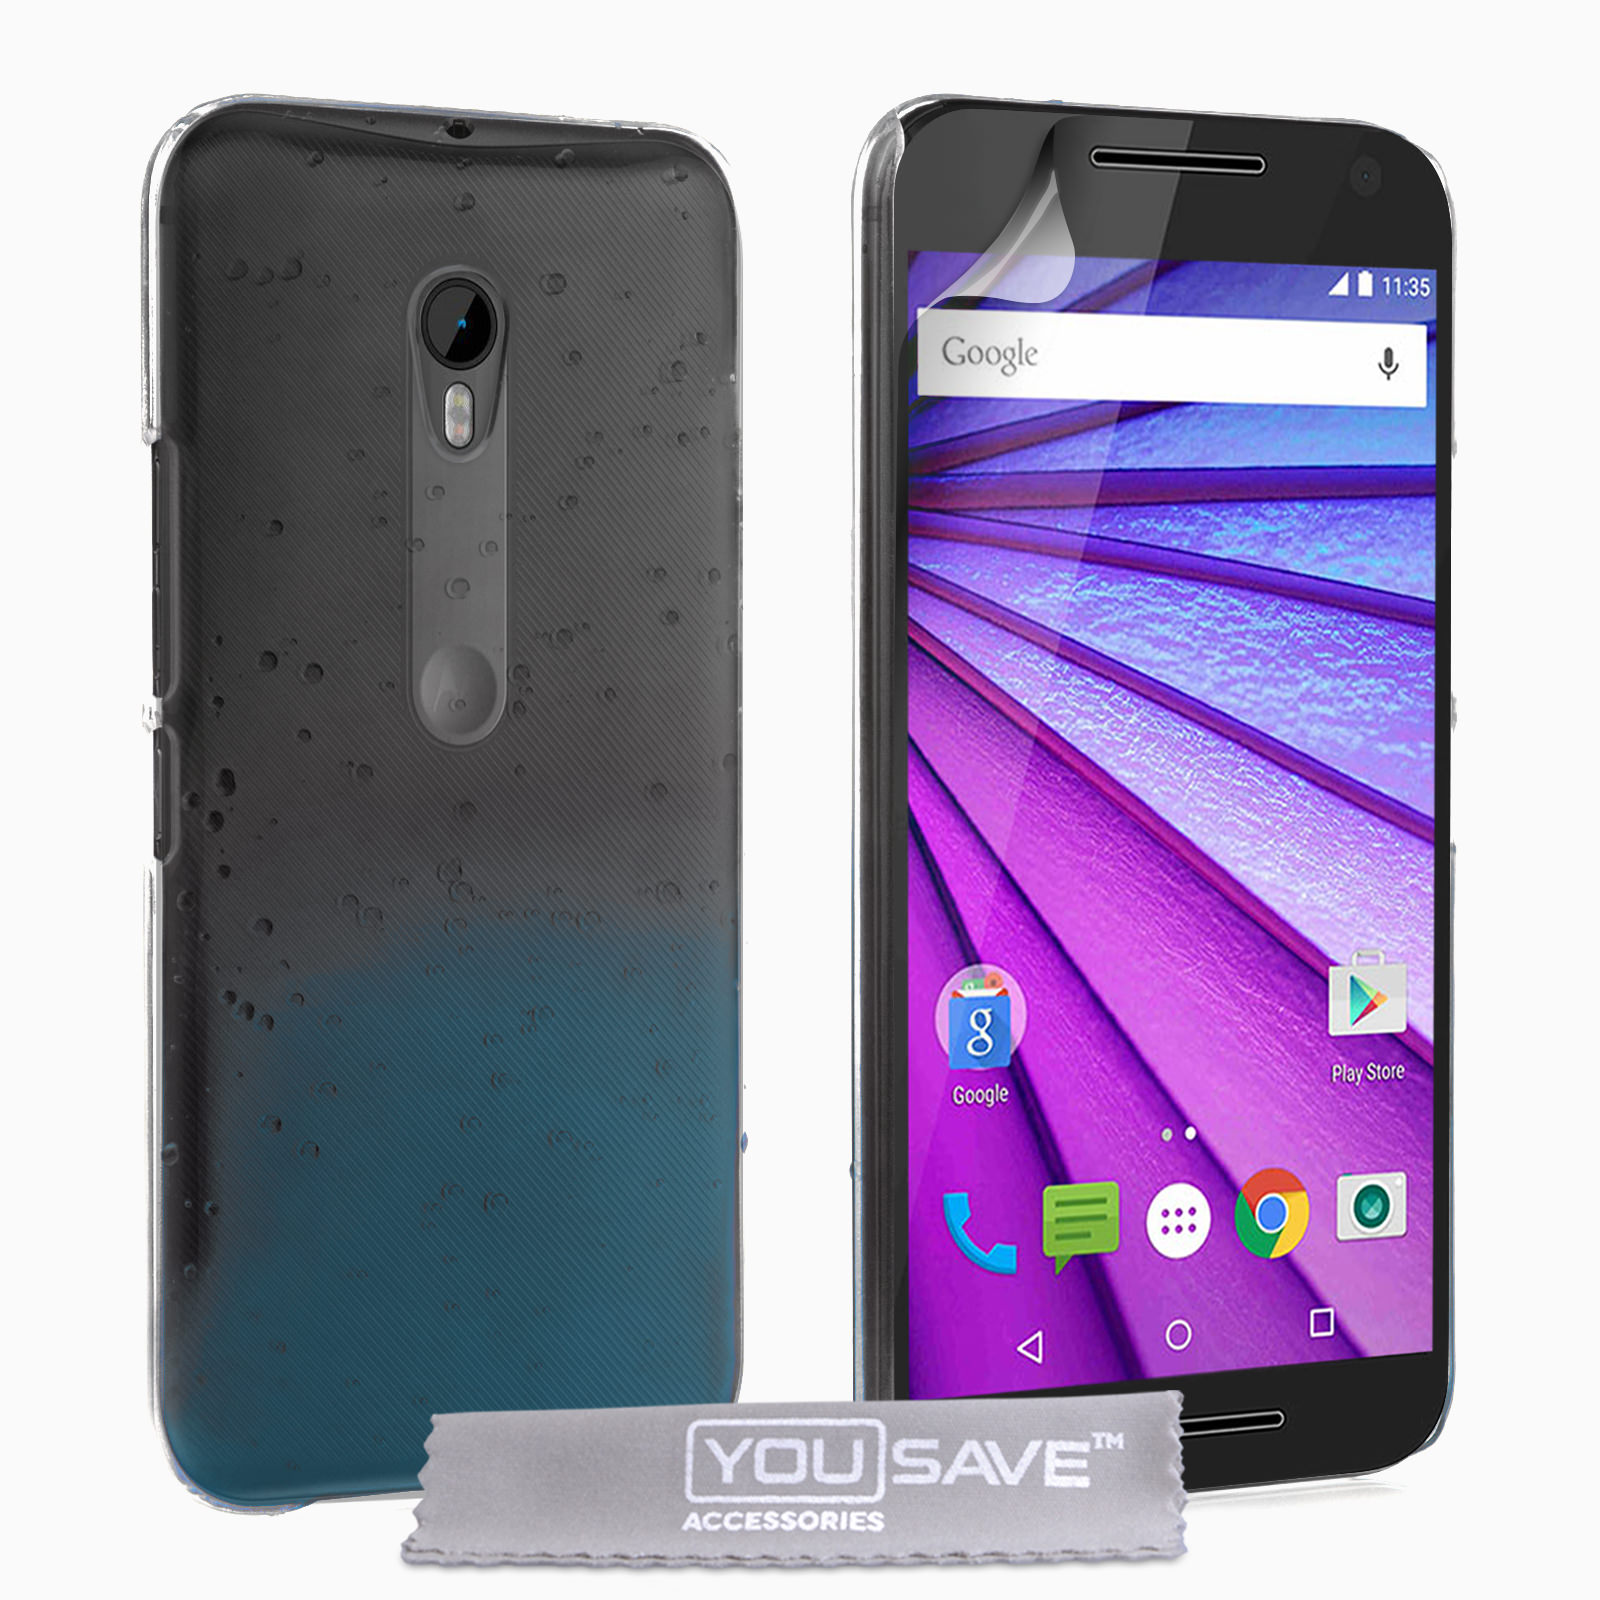 Yousave Accessories Motorola Moto G 3rd Gen Raindrop Hard Case - Blue / Clear